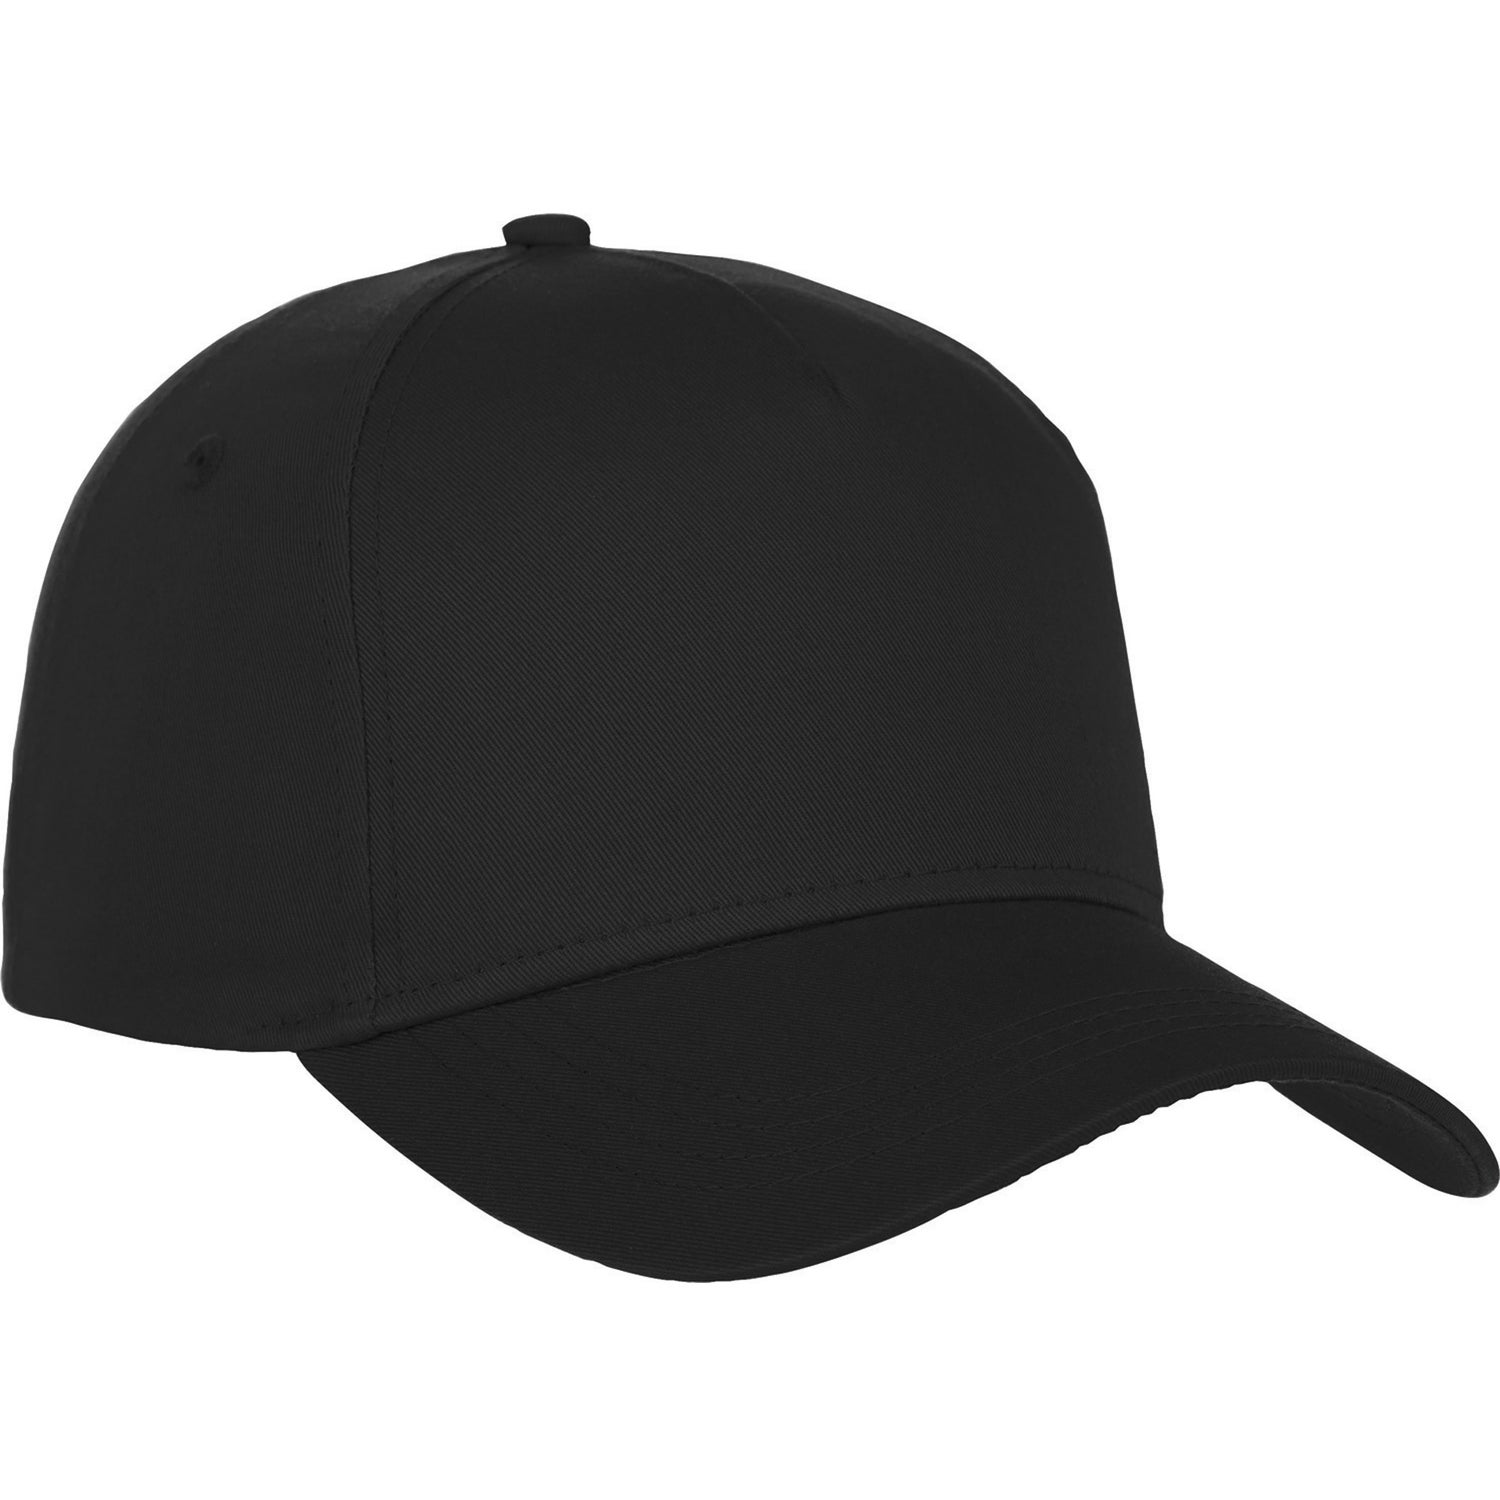 aef775d0a41 Promotional Composite Ballcap by TRIMARKs with Custom Logo for  7.77 Ea.